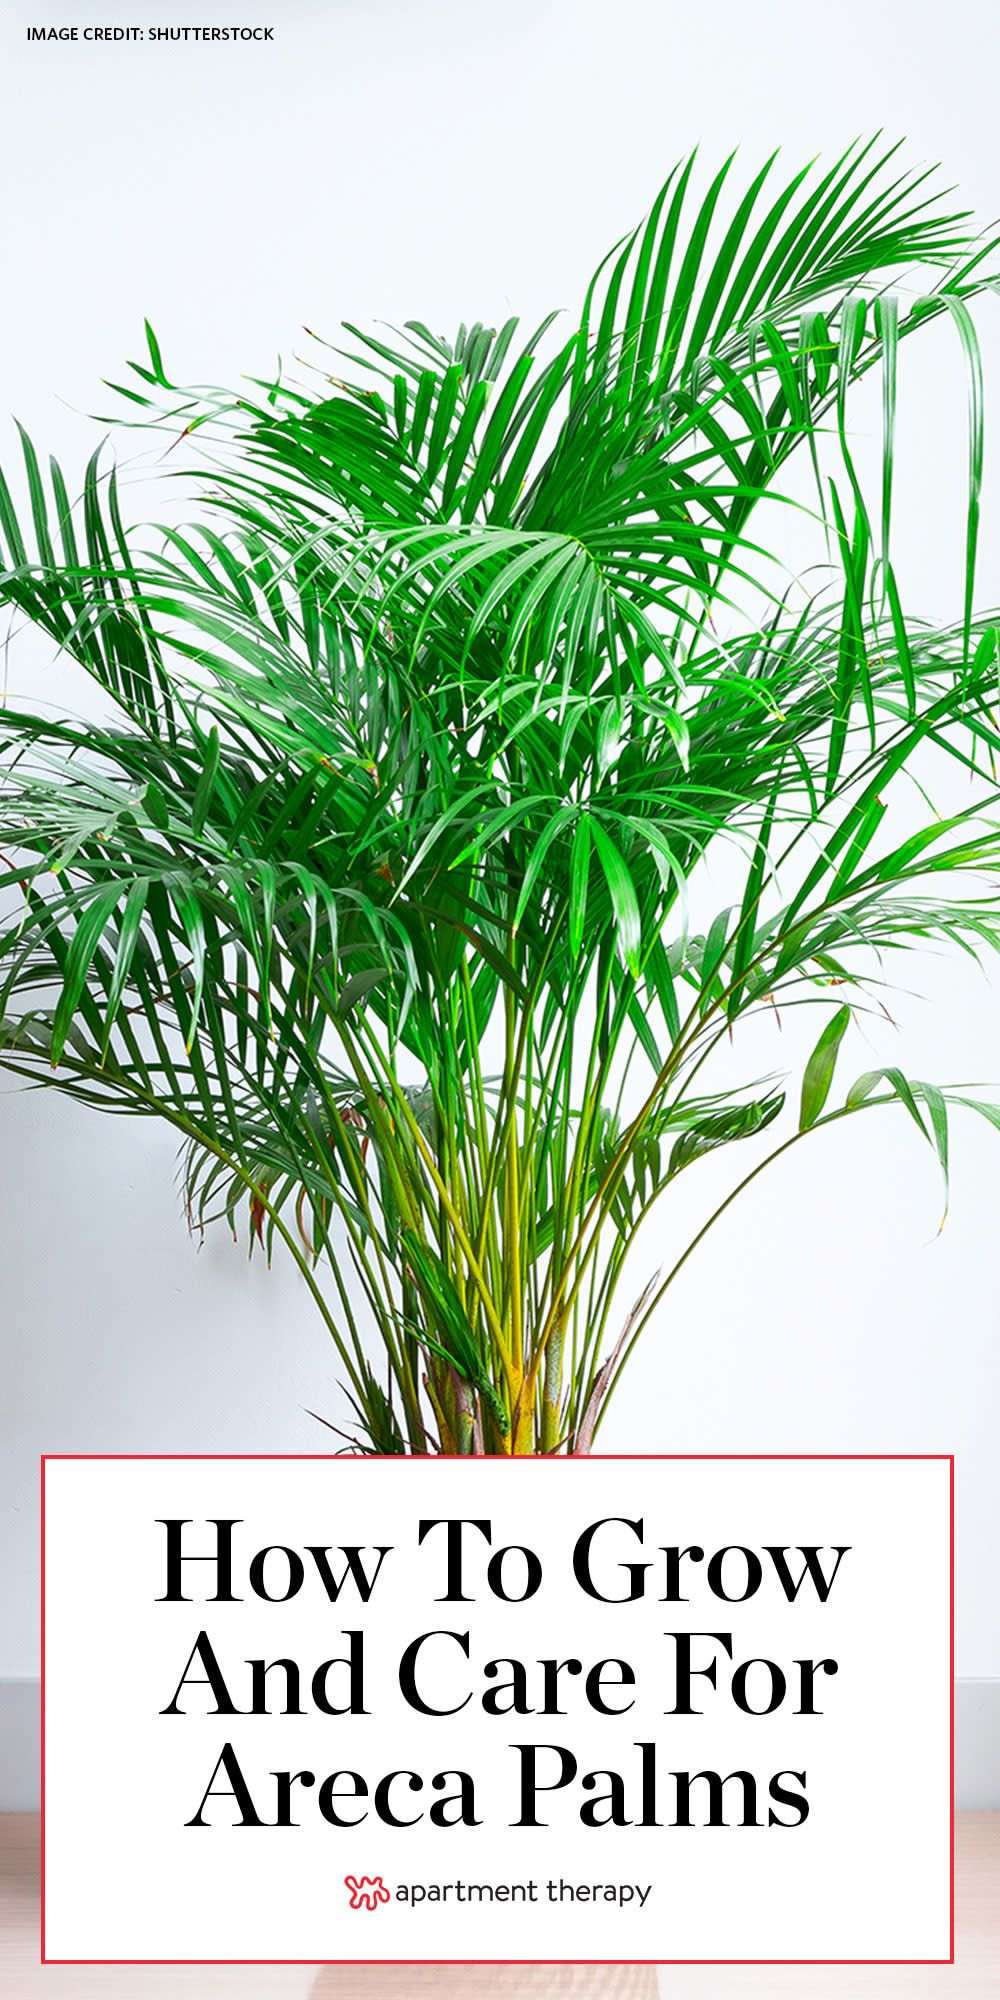 Areca palms are the toxinfiltering tropical houseplants